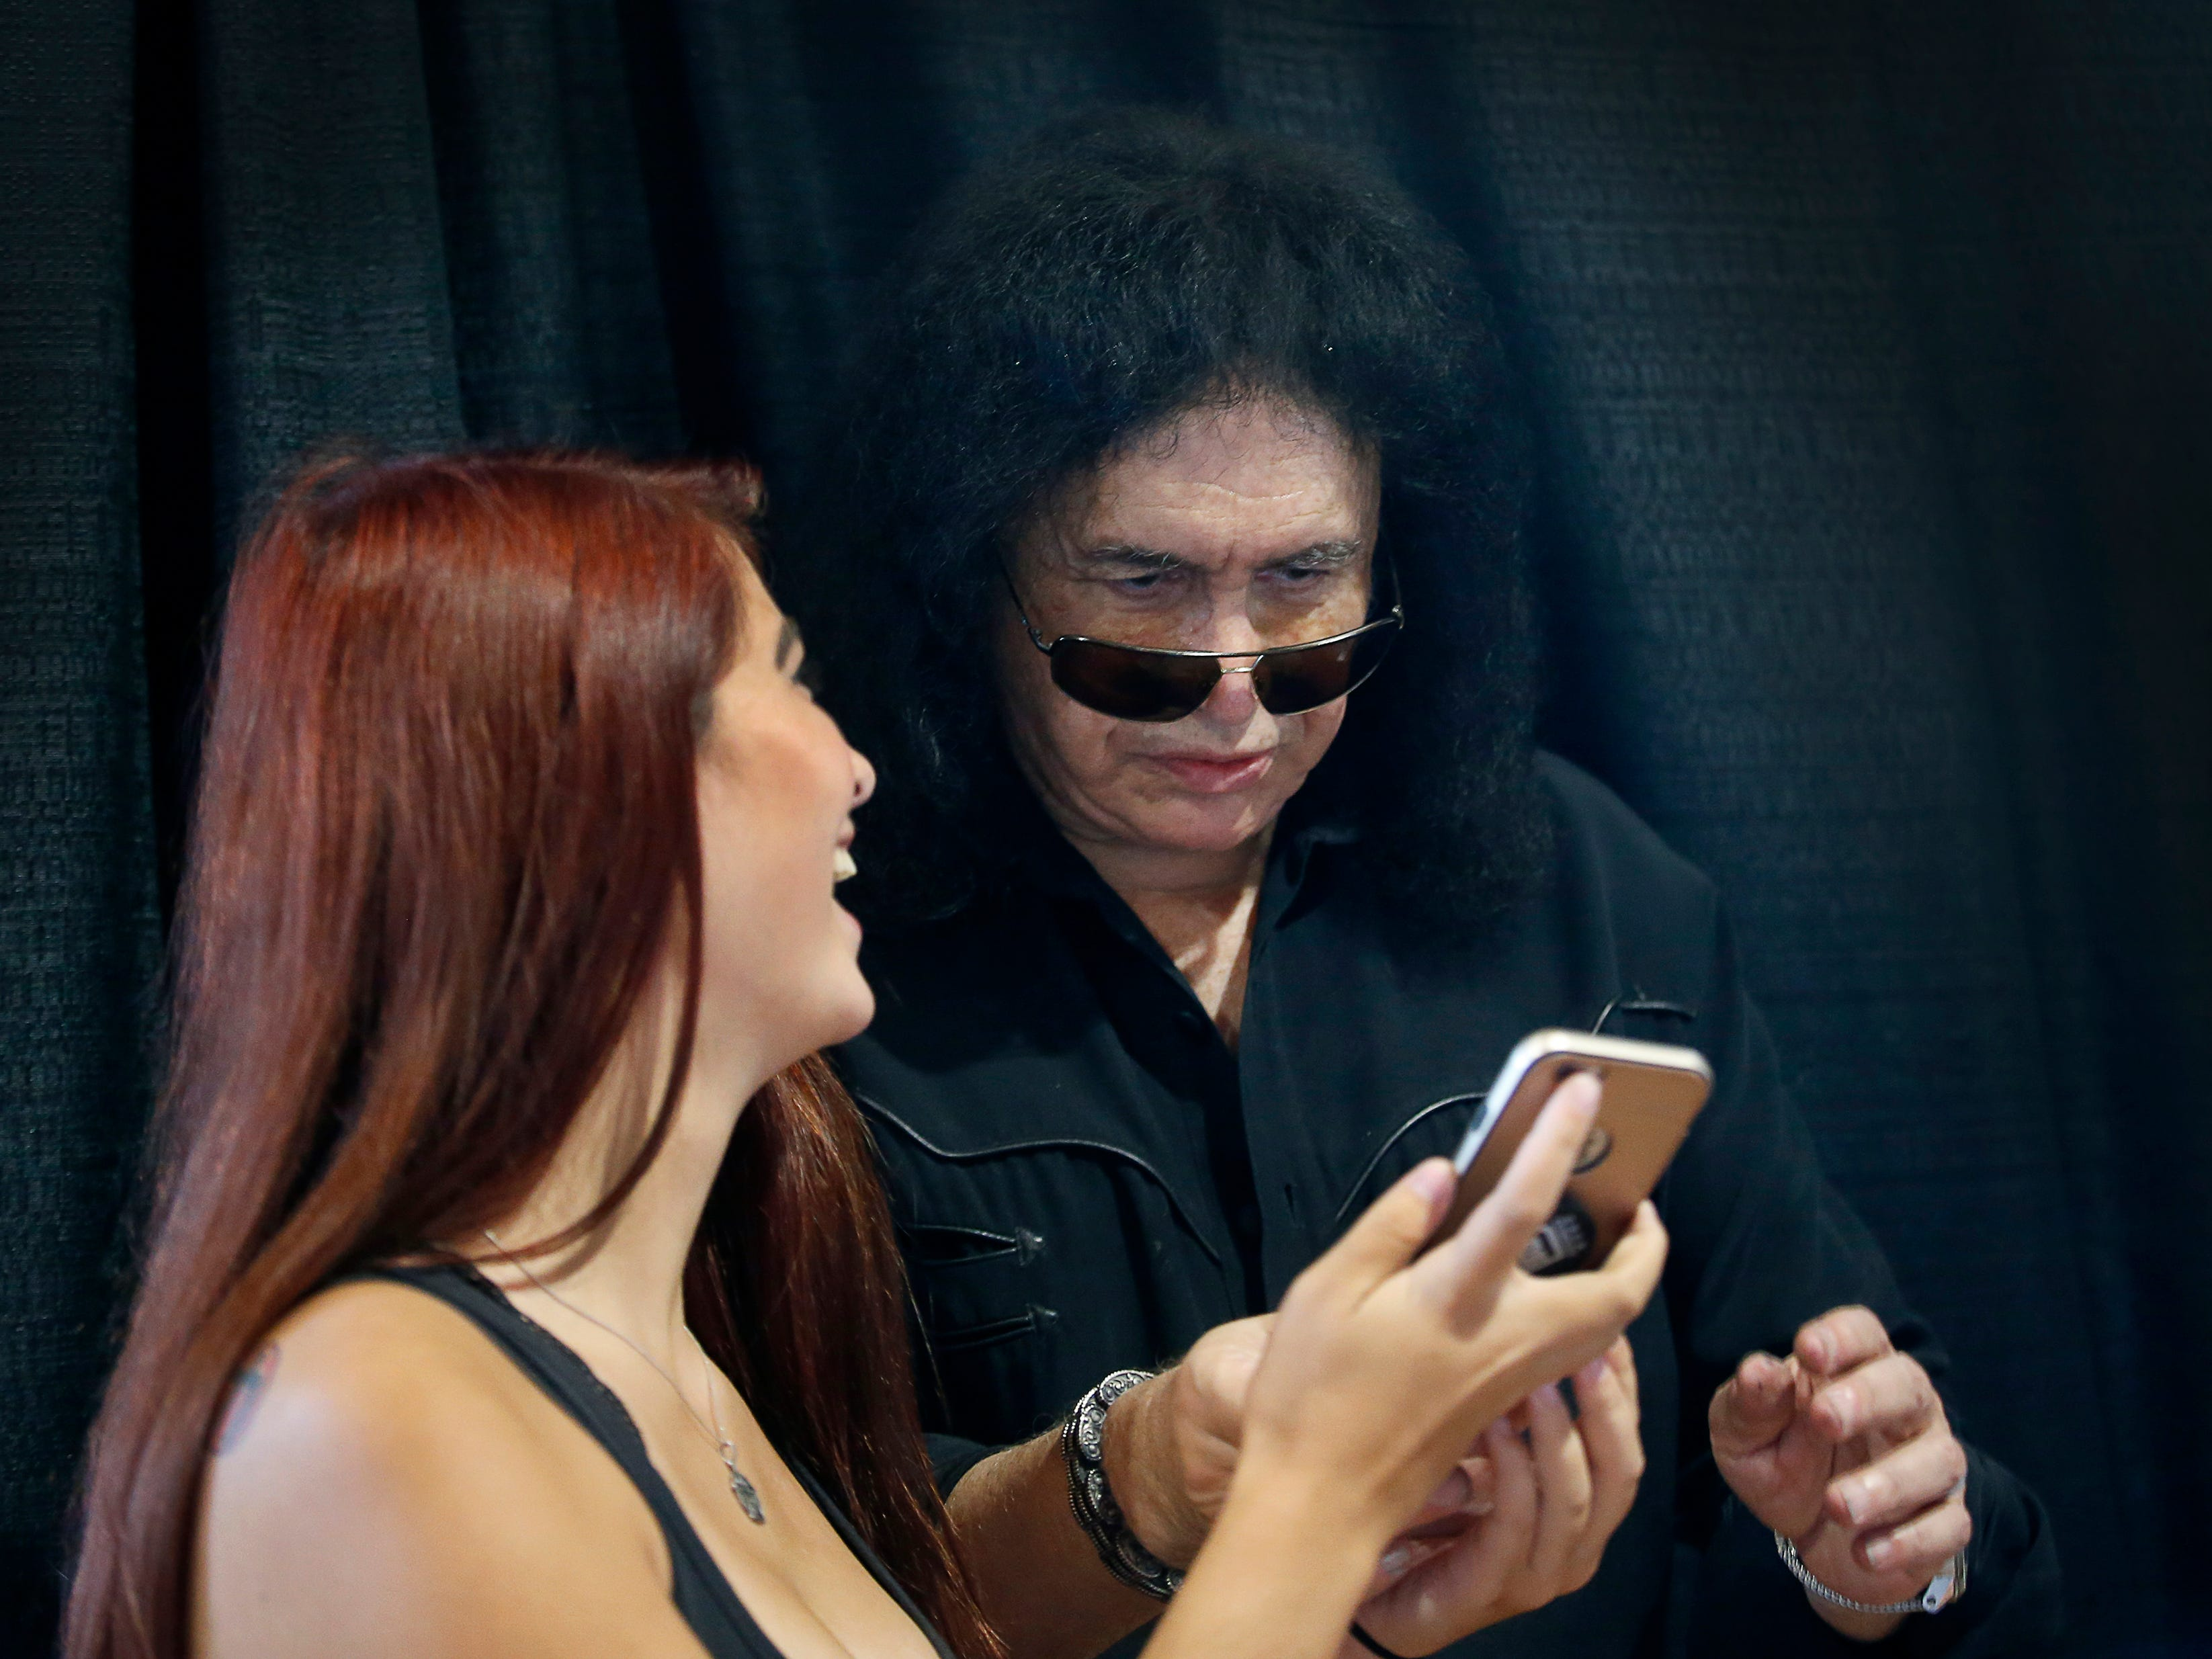 Taylor Murphy of Greece, has some laughs with KISS co-founder Gene Simmons at the Chili-Paul Wegmans store where he was promoting his MoneyBag Sodas.